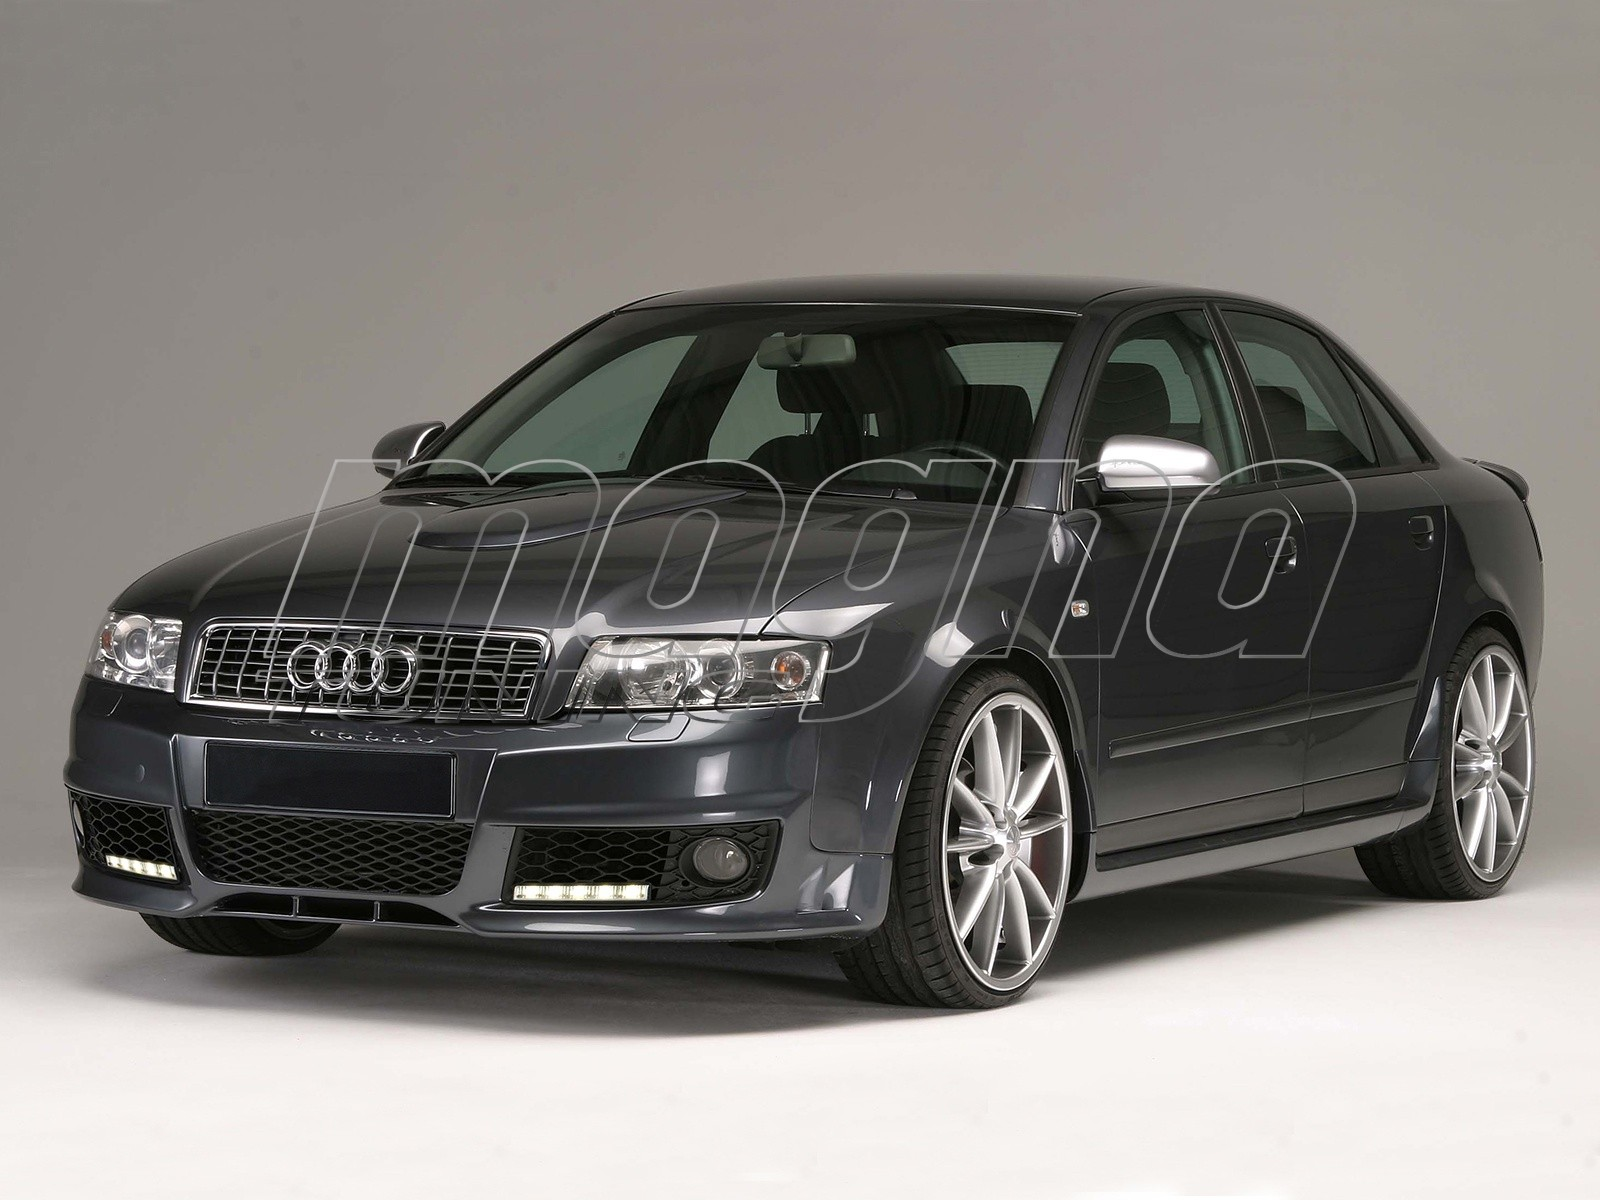 audi a4 b6 8e limousine rs4 b7 look body kit. Black Bedroom Furniture Sets. Home Design Ideas